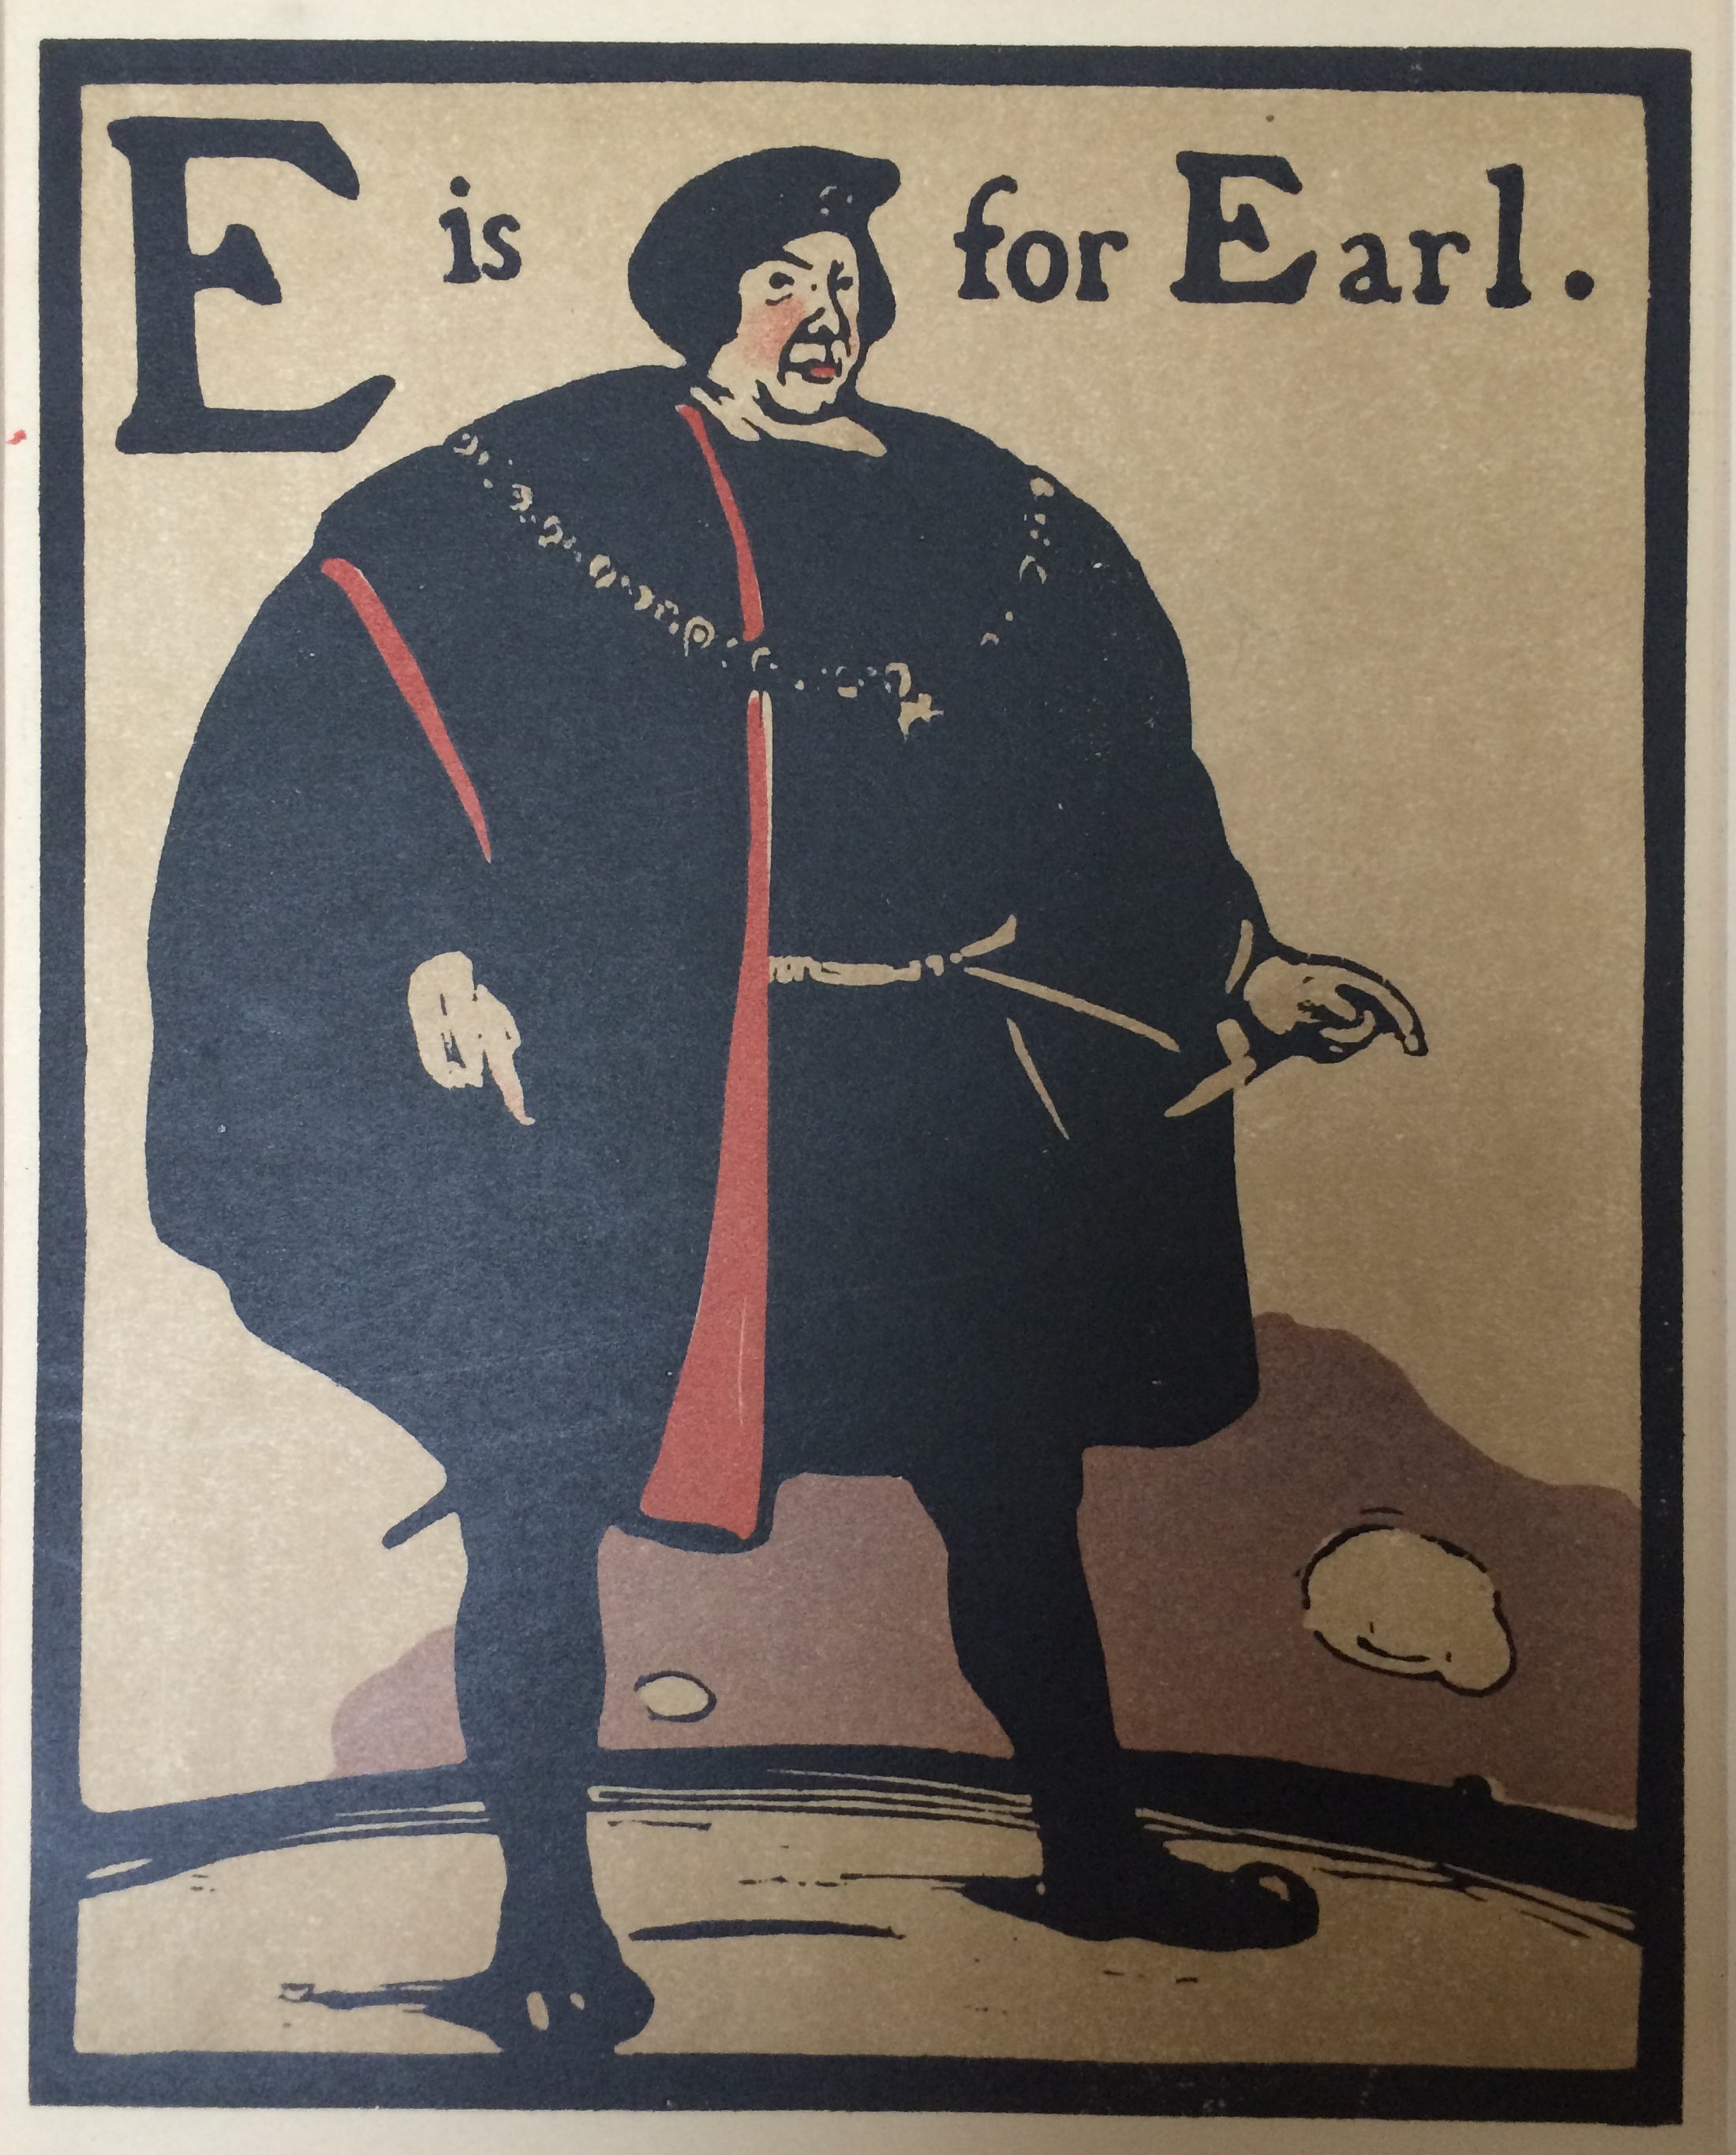 E is for Earl